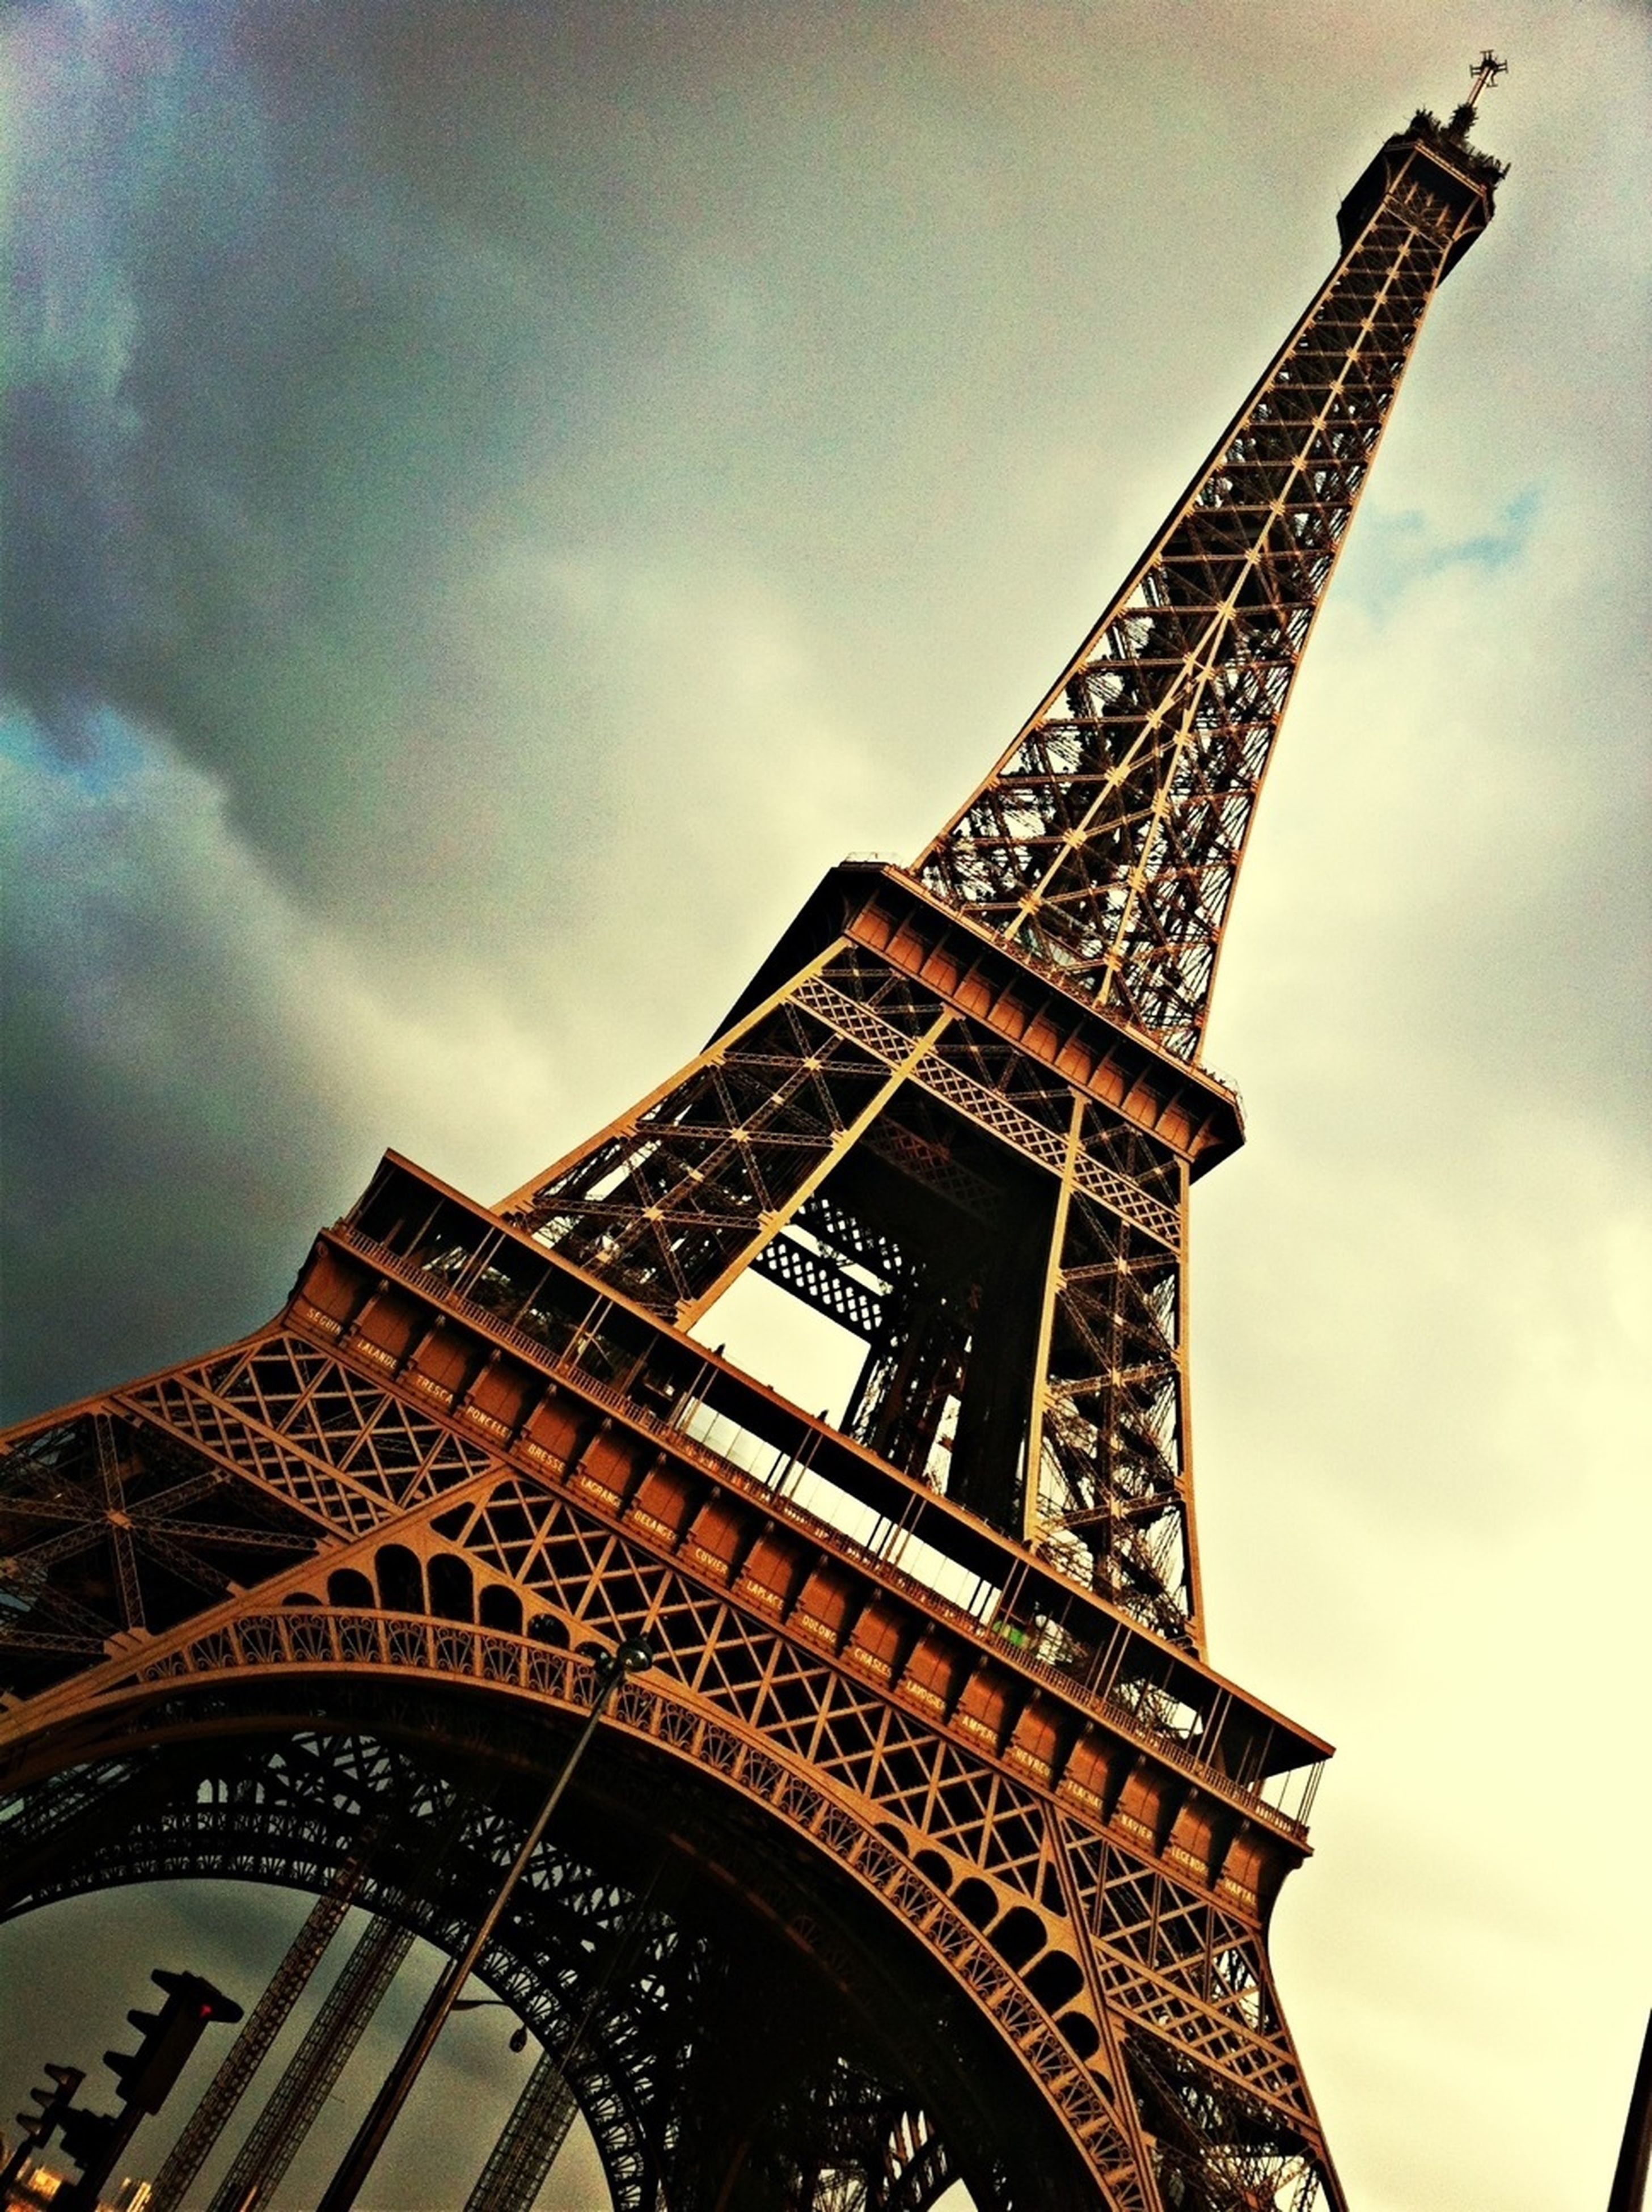 architecture, built structure, international landmark, famous place, low angle view, travel destinations, tourism, eiffel tower, capital cities, travel, sky, tower, history, culture, tall - high, building exterior, cloud - sky, architectural feature, city, cloudy